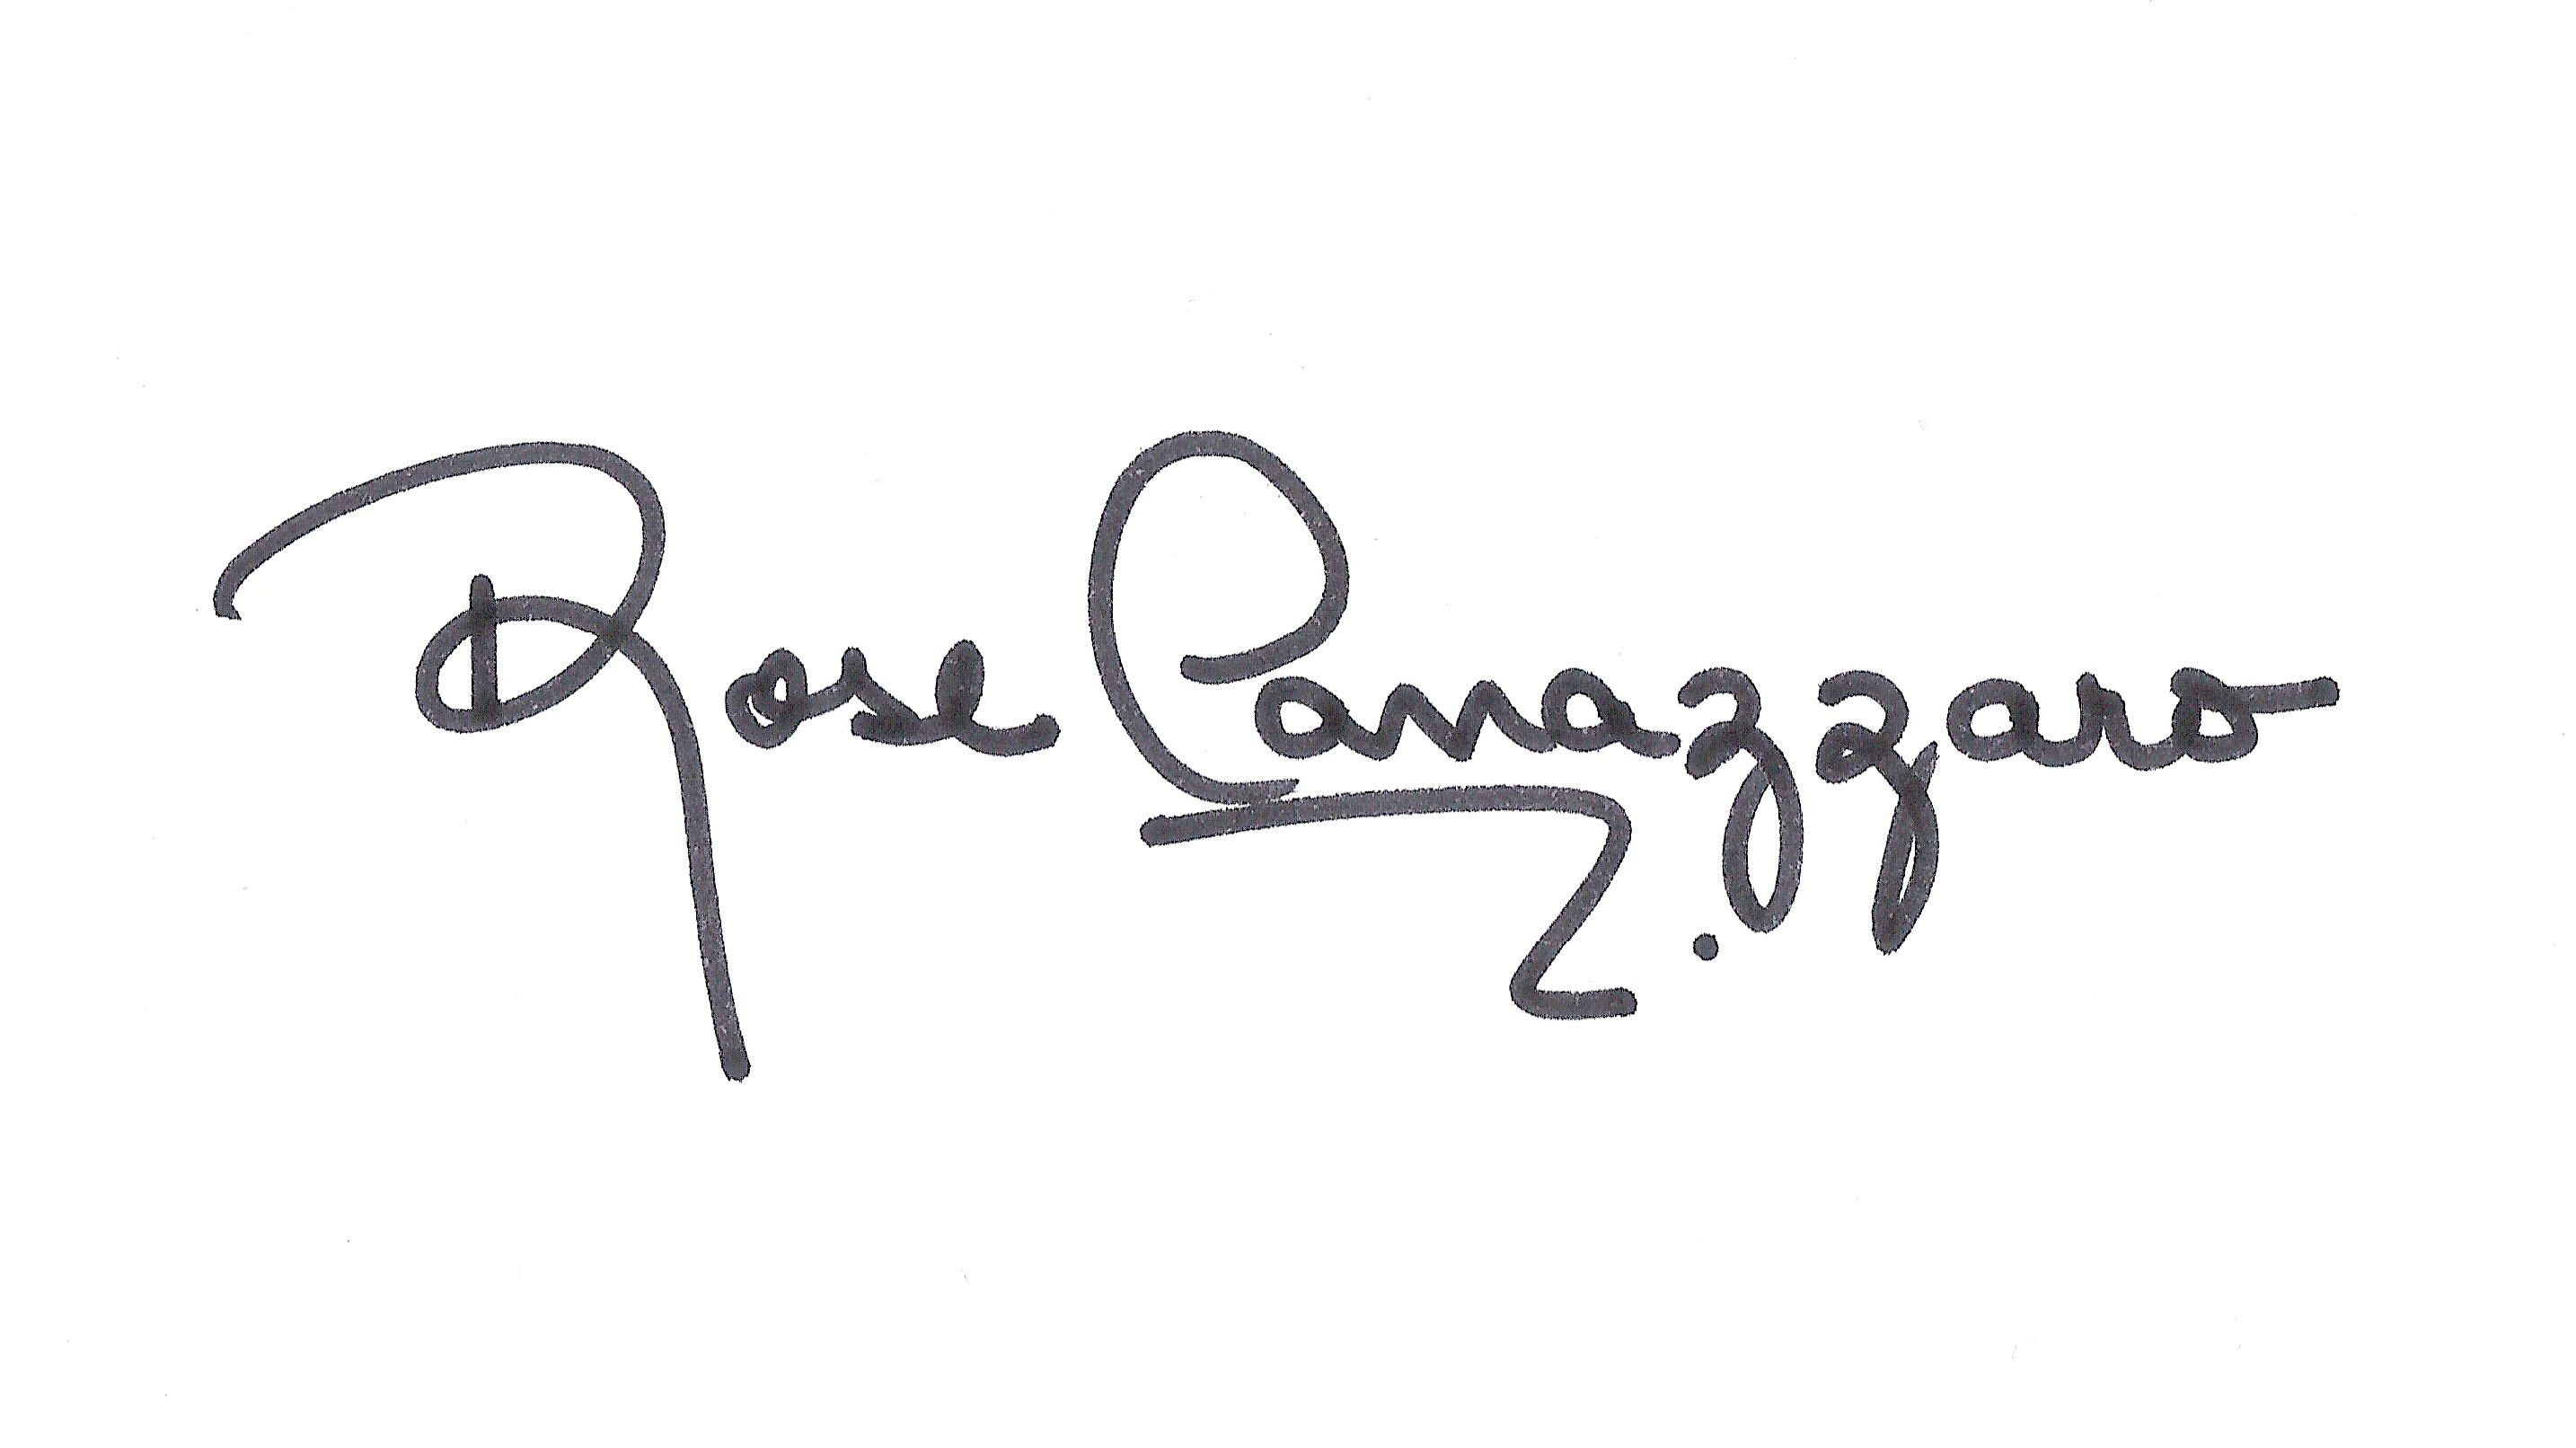 Rose Canazzaro's Signature